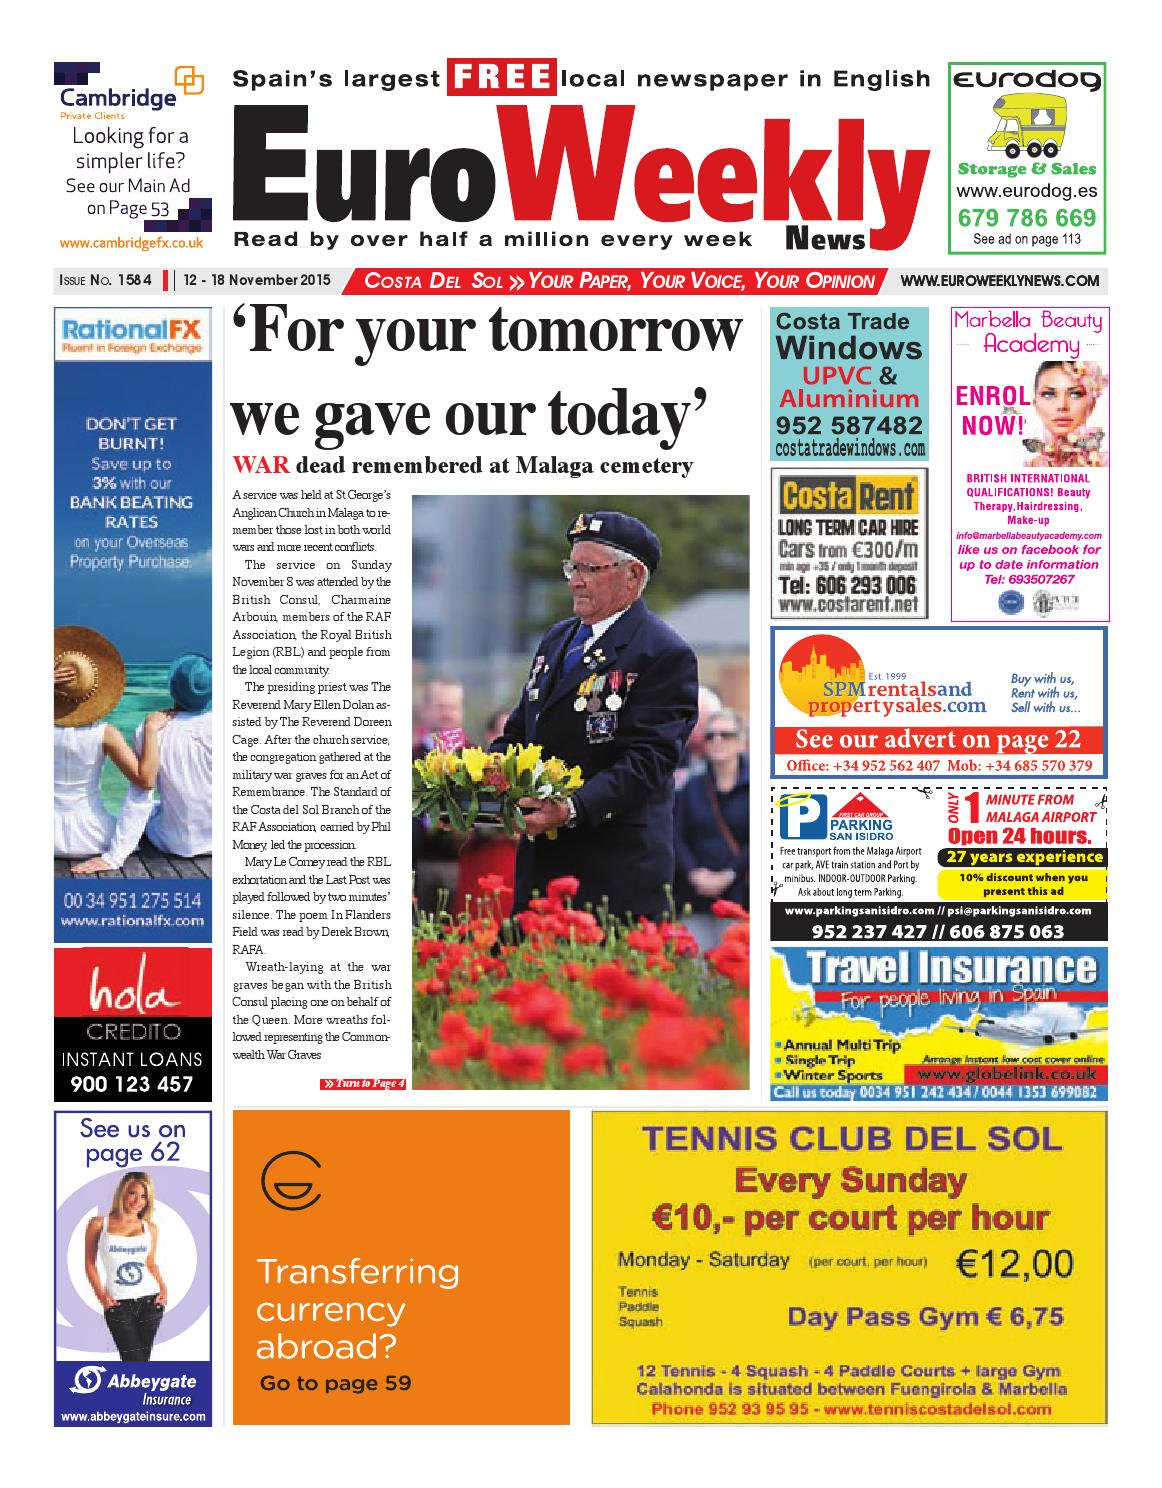 Euro Weekly News Costa Del Sol 12 18 November 2015 Issue 1584  # Rogelio Muebles San Rafael